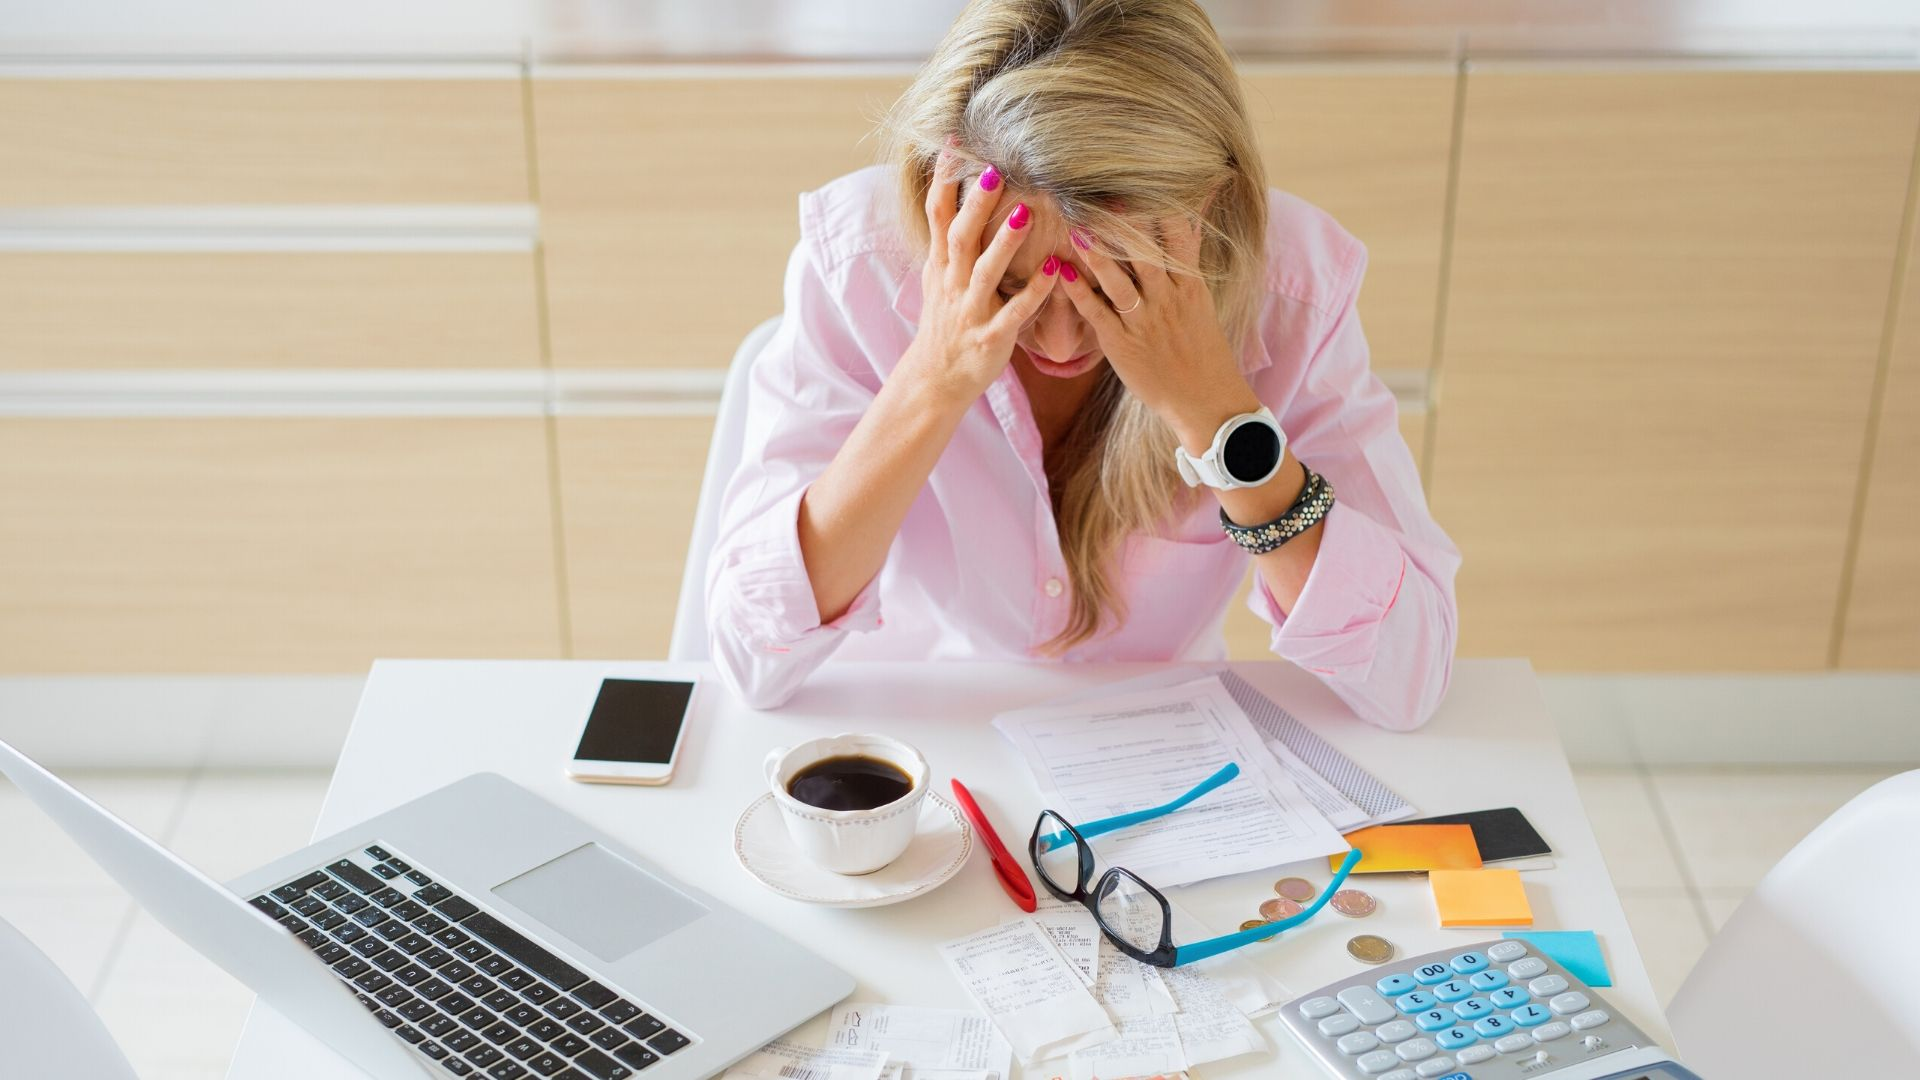 woman sitting at her desk surrounded by financial paperwork with head in hands. Independent Financial Adviser, Independent Financial Planners, Financial Planning, Personal Financial Planning, Personal Finances, Pensions, Retirement Planning, Tax Planning, Cash Flow Budgeting, Banking, Insurance, Mortgages, Savings, Investments, Estate Planning, Later Life Forecasting, Investment Portfolio, Financial Guidance, Financial Advice, Financial Security, Family Protection, Tax Efficient Investments, Saving For Long Term Goals, Life Centred Financial Planning, Life Centred Financial Advice, Life Centred Financial Planners, Life Centred Adviser, Life Centred Advisor, Lifestyle Financial Advisor, Lifestyle Financial Adviser, Lifestyle Financial Planners, Lifestyle Financial Planning